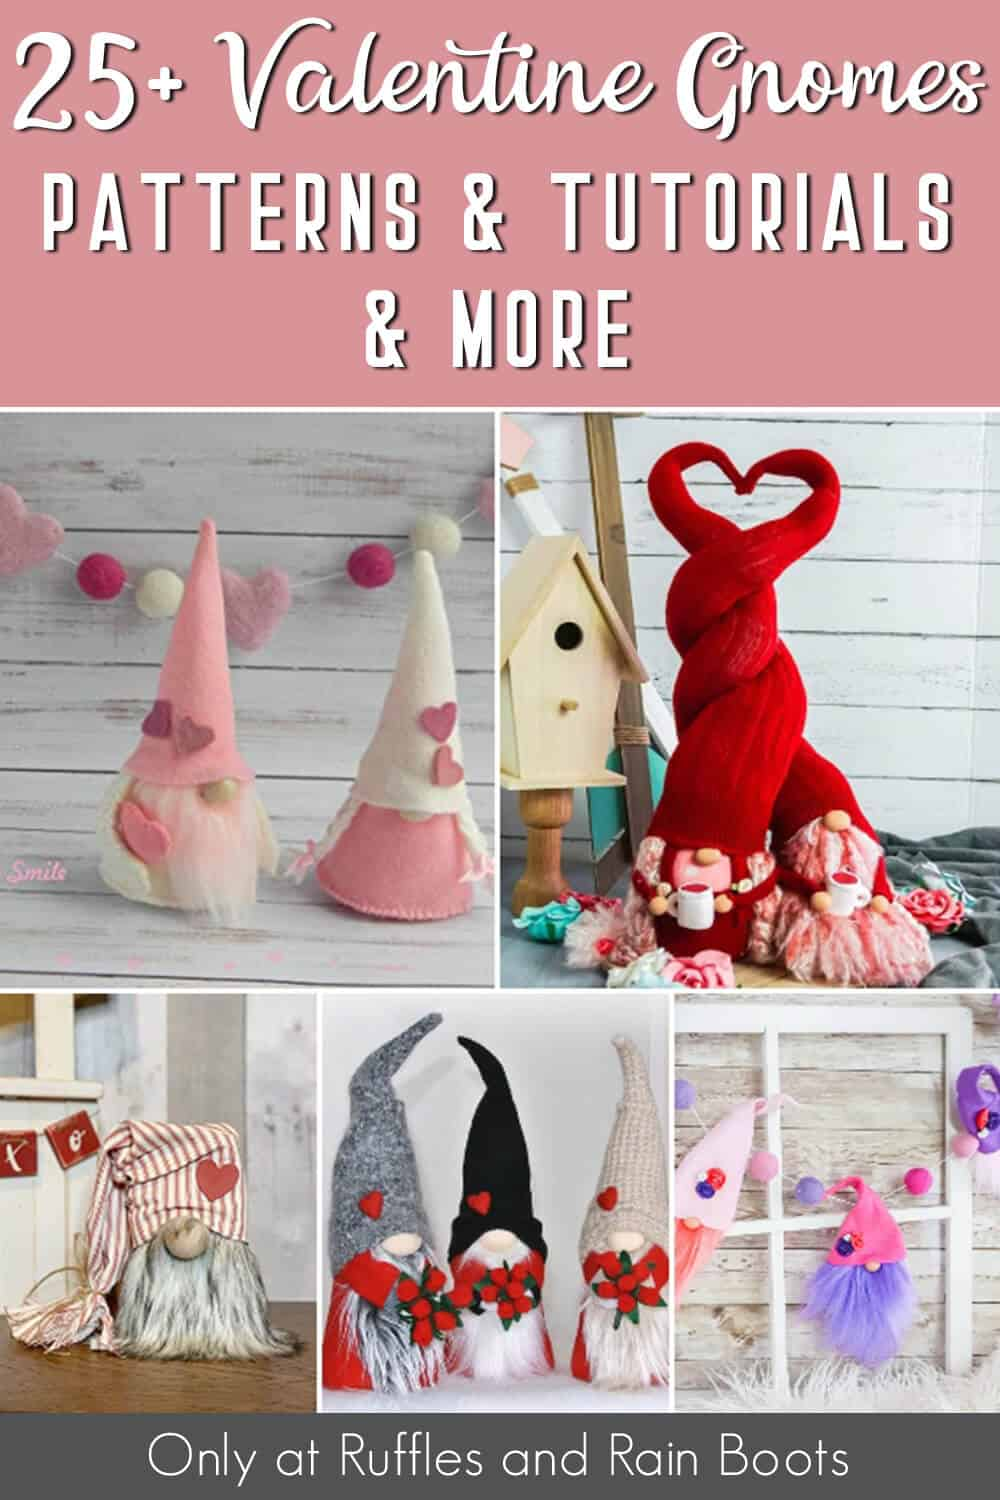 photo collage of valentine gnome tutorials with text which reads 25+ valentine gnomes pattern & tutorials & more